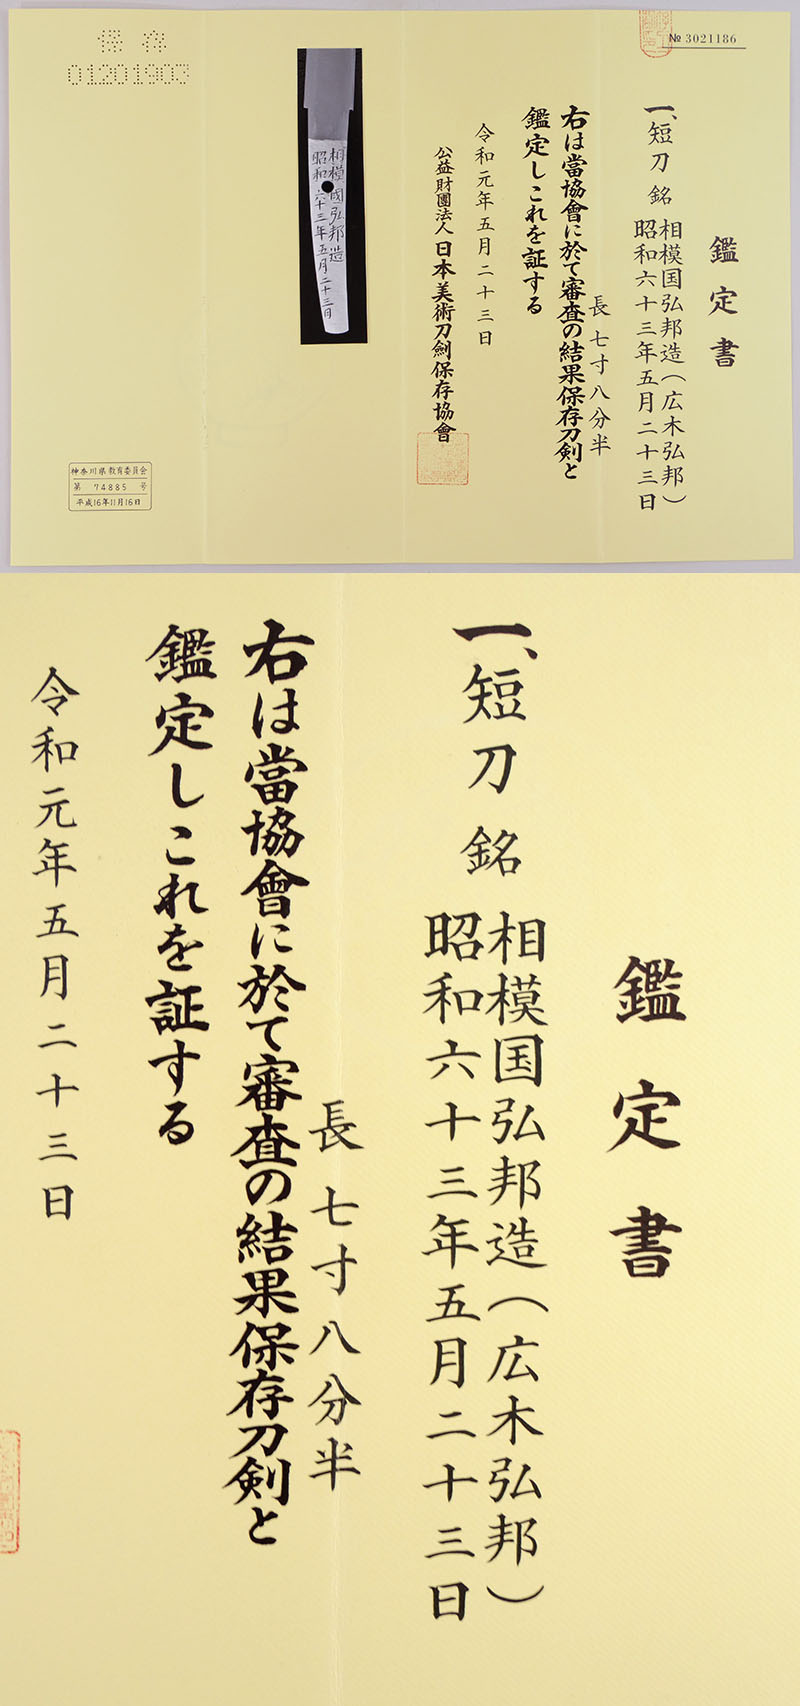 相模國弘邦造 昭和六十三年五月二十三日(広木弘邦) Picture of Certificate